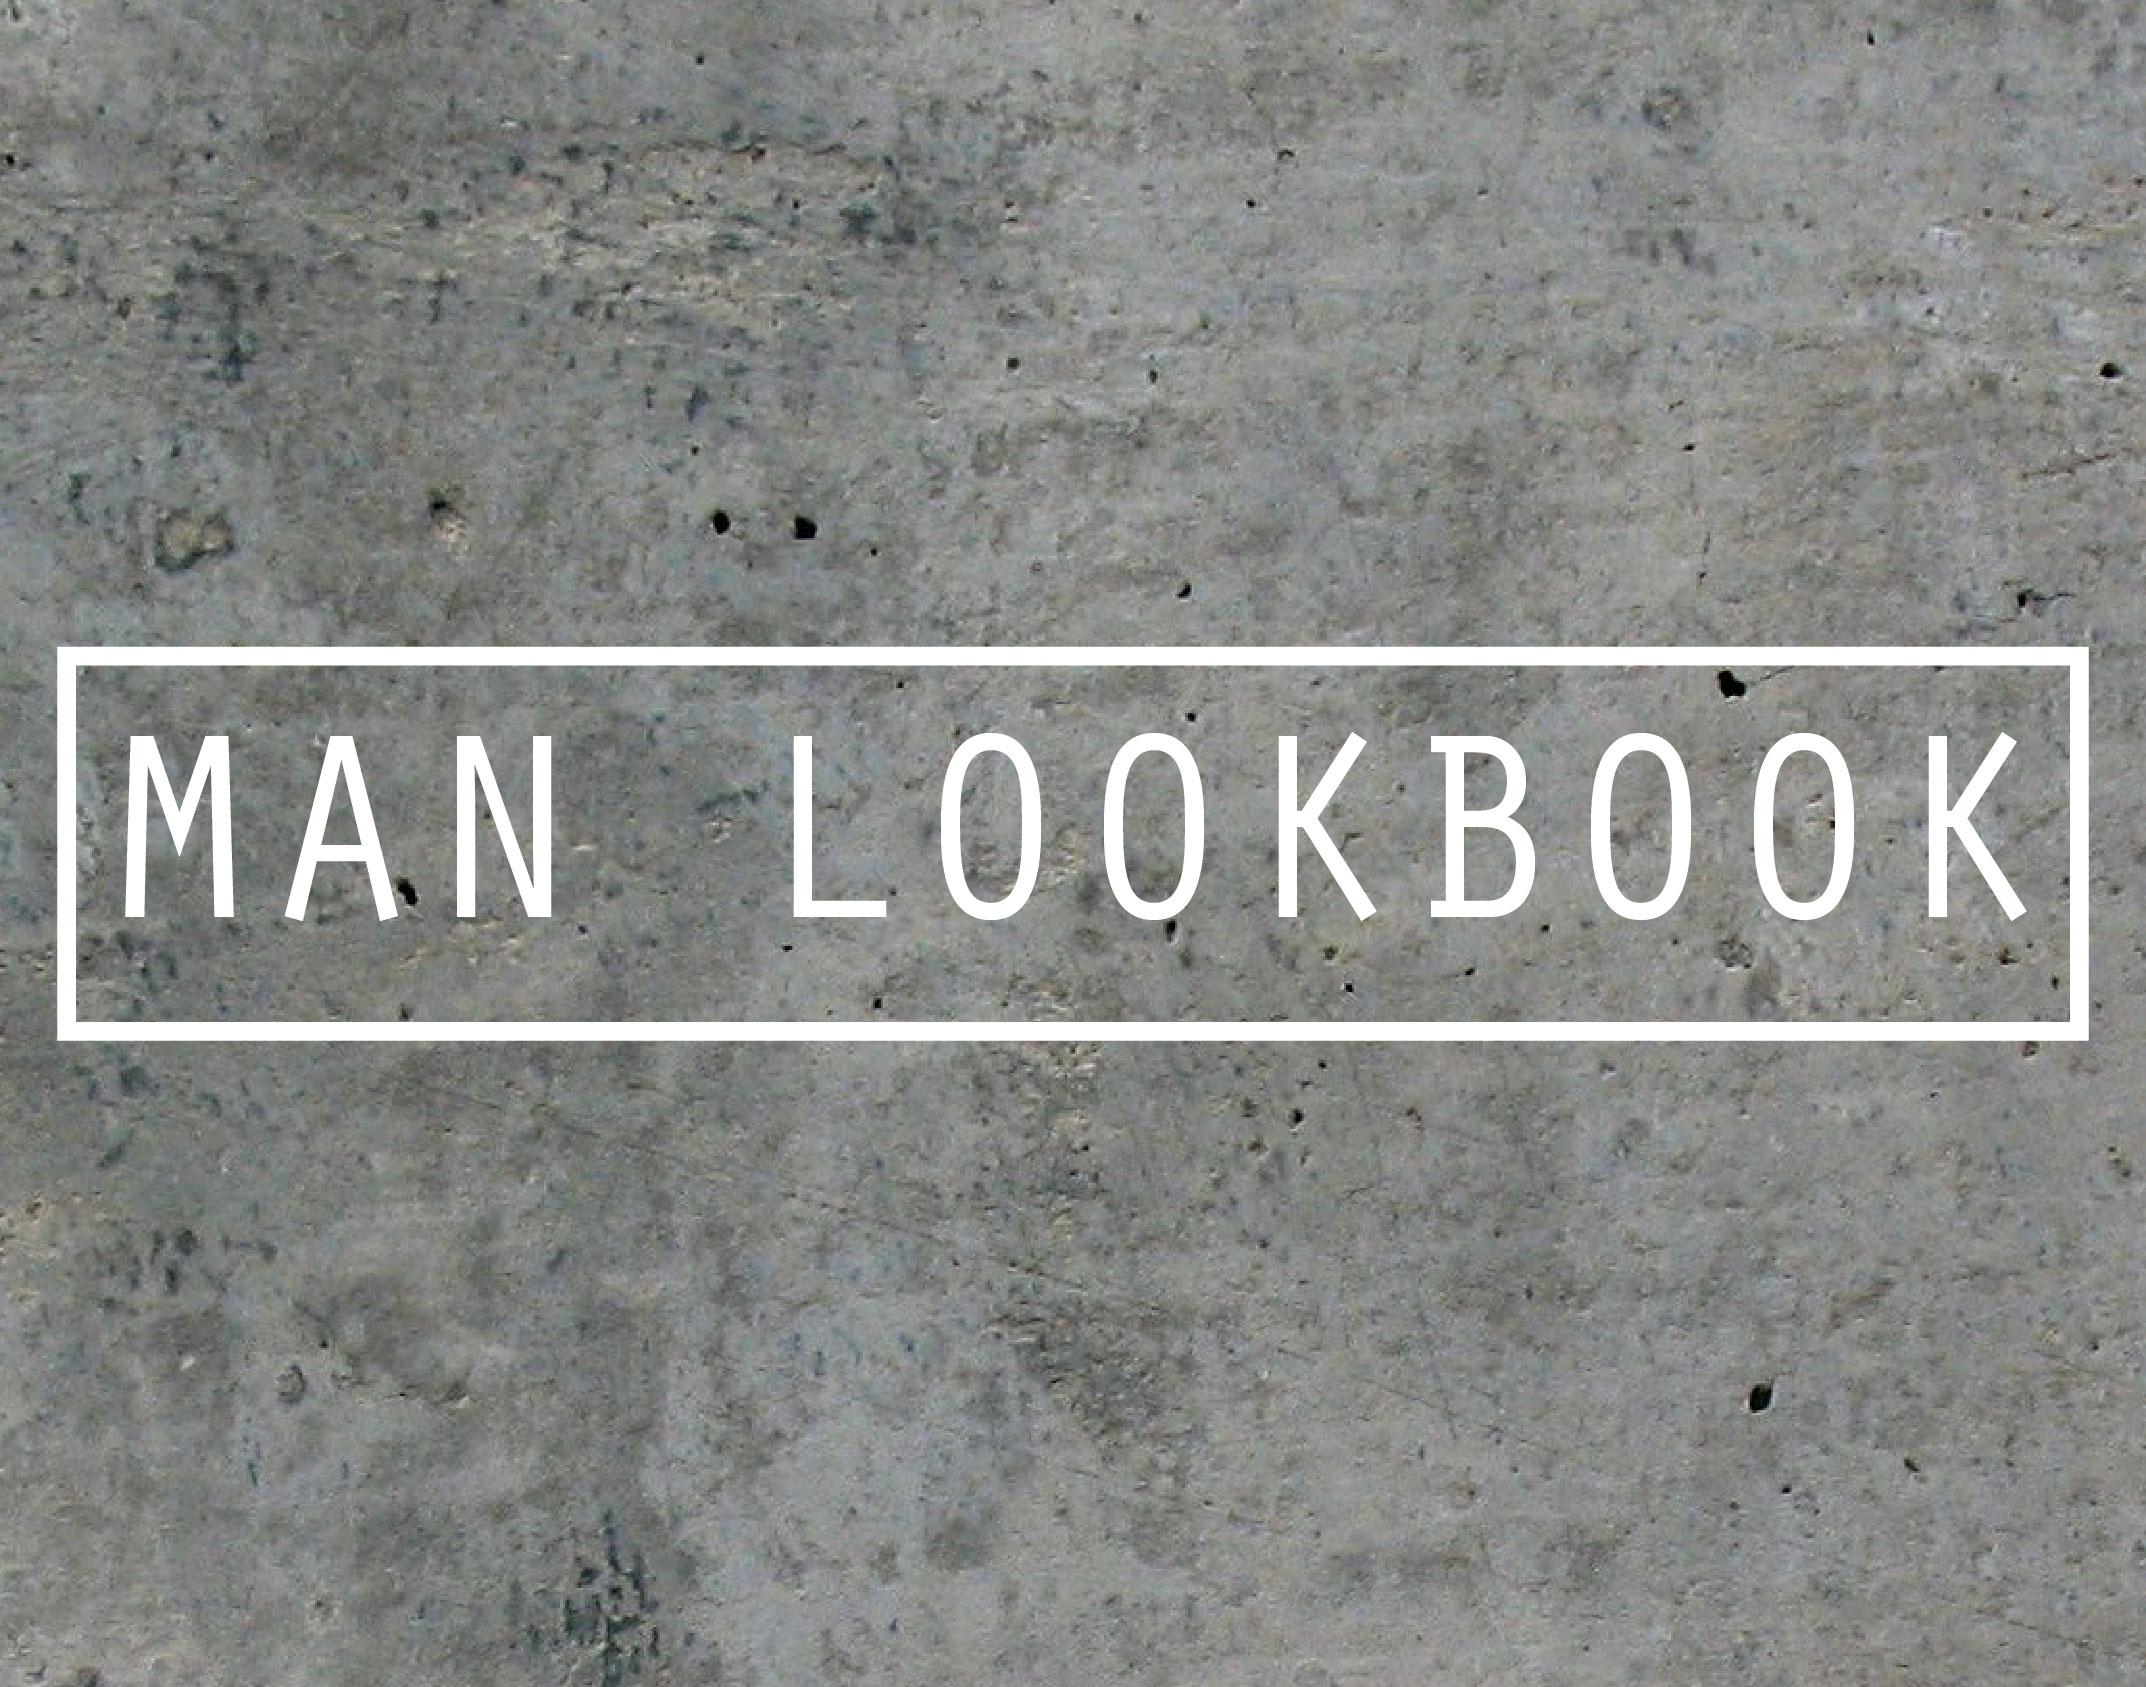 man lookbook